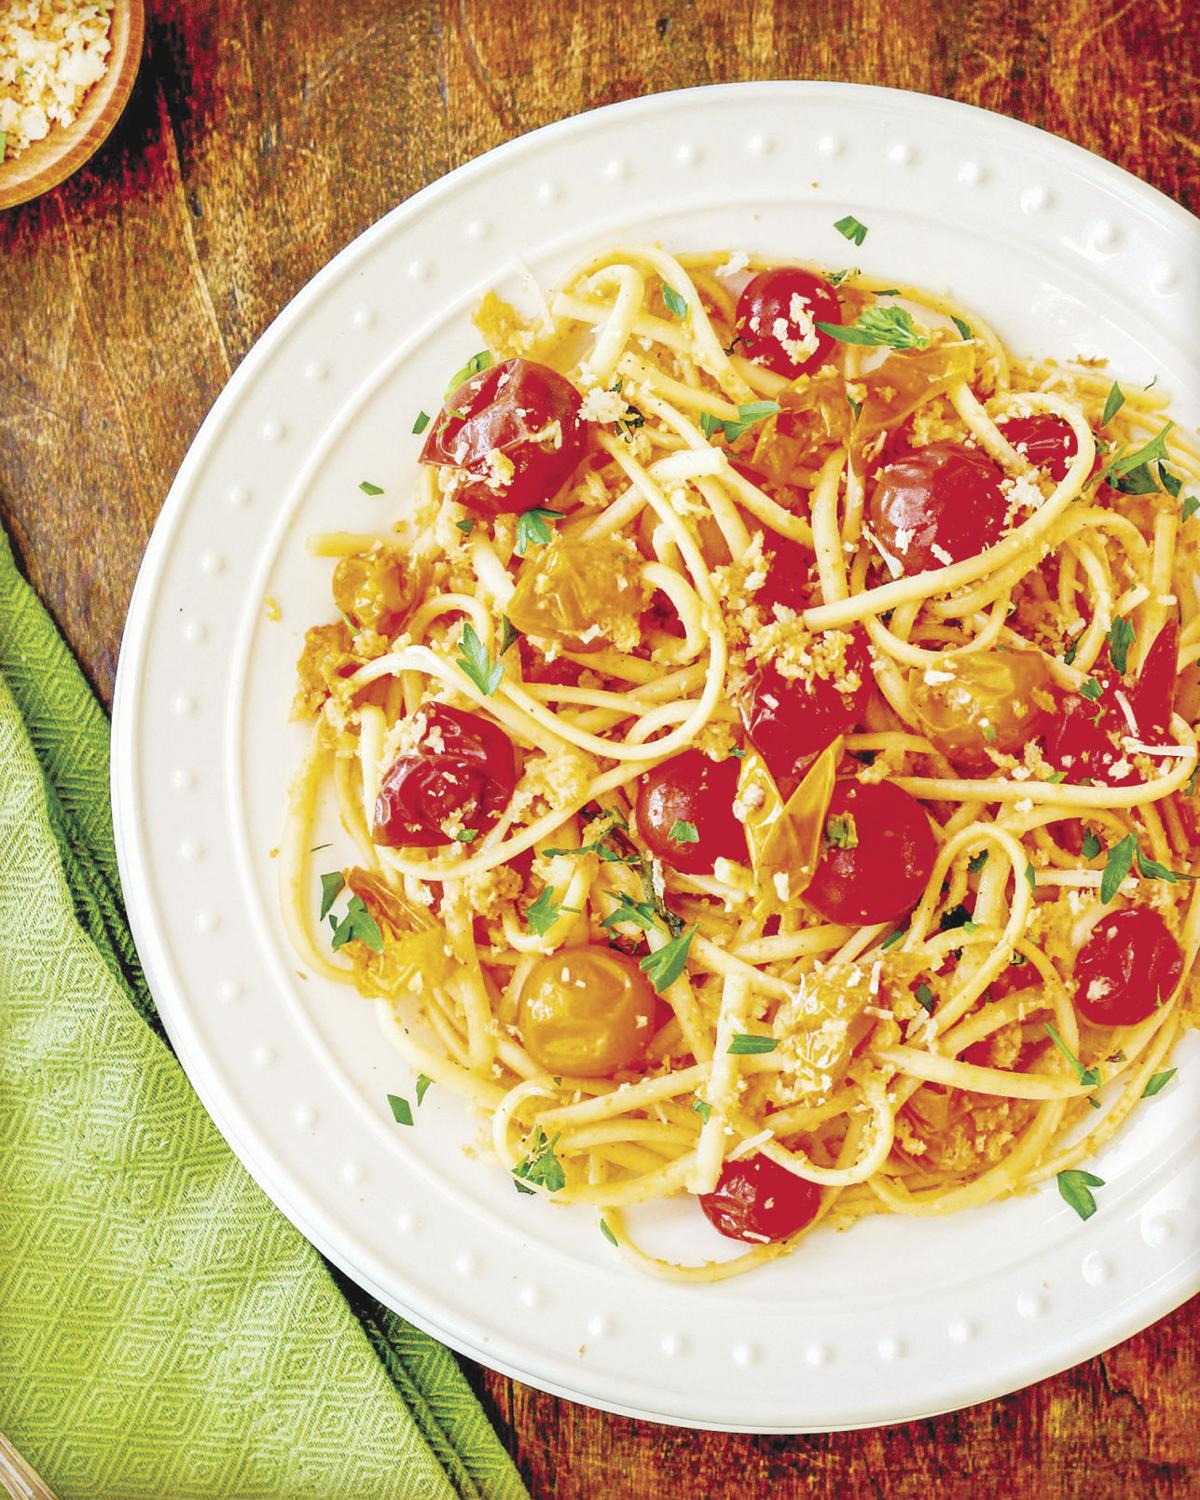 Linguine with cherry tomatoes